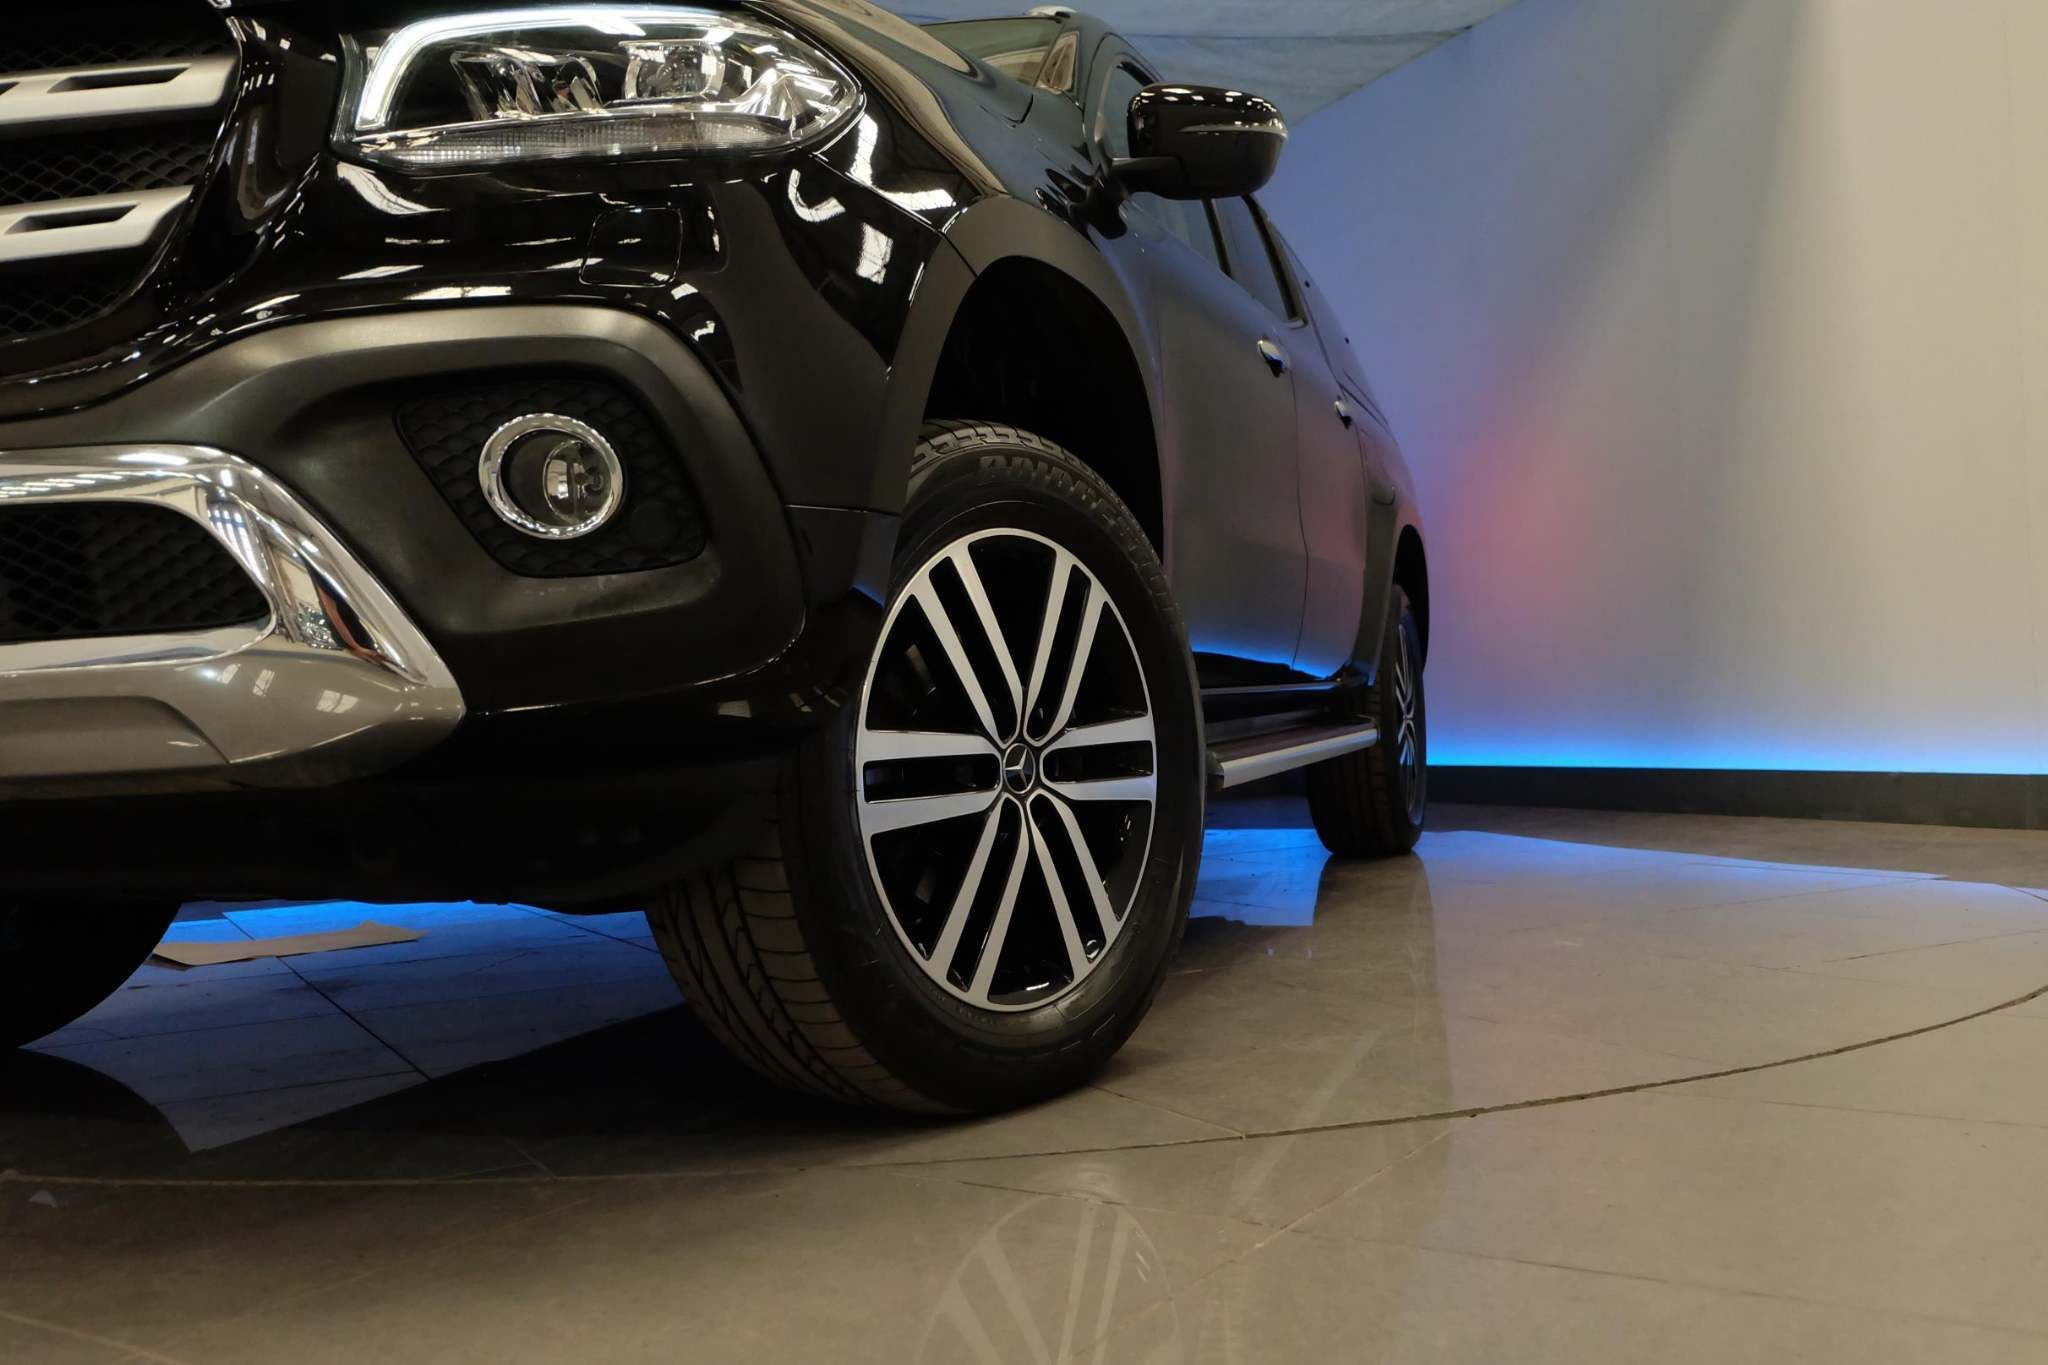 Used Mercedes-Benz X Class 2.3 X250d Power Auto 4matic 4dr